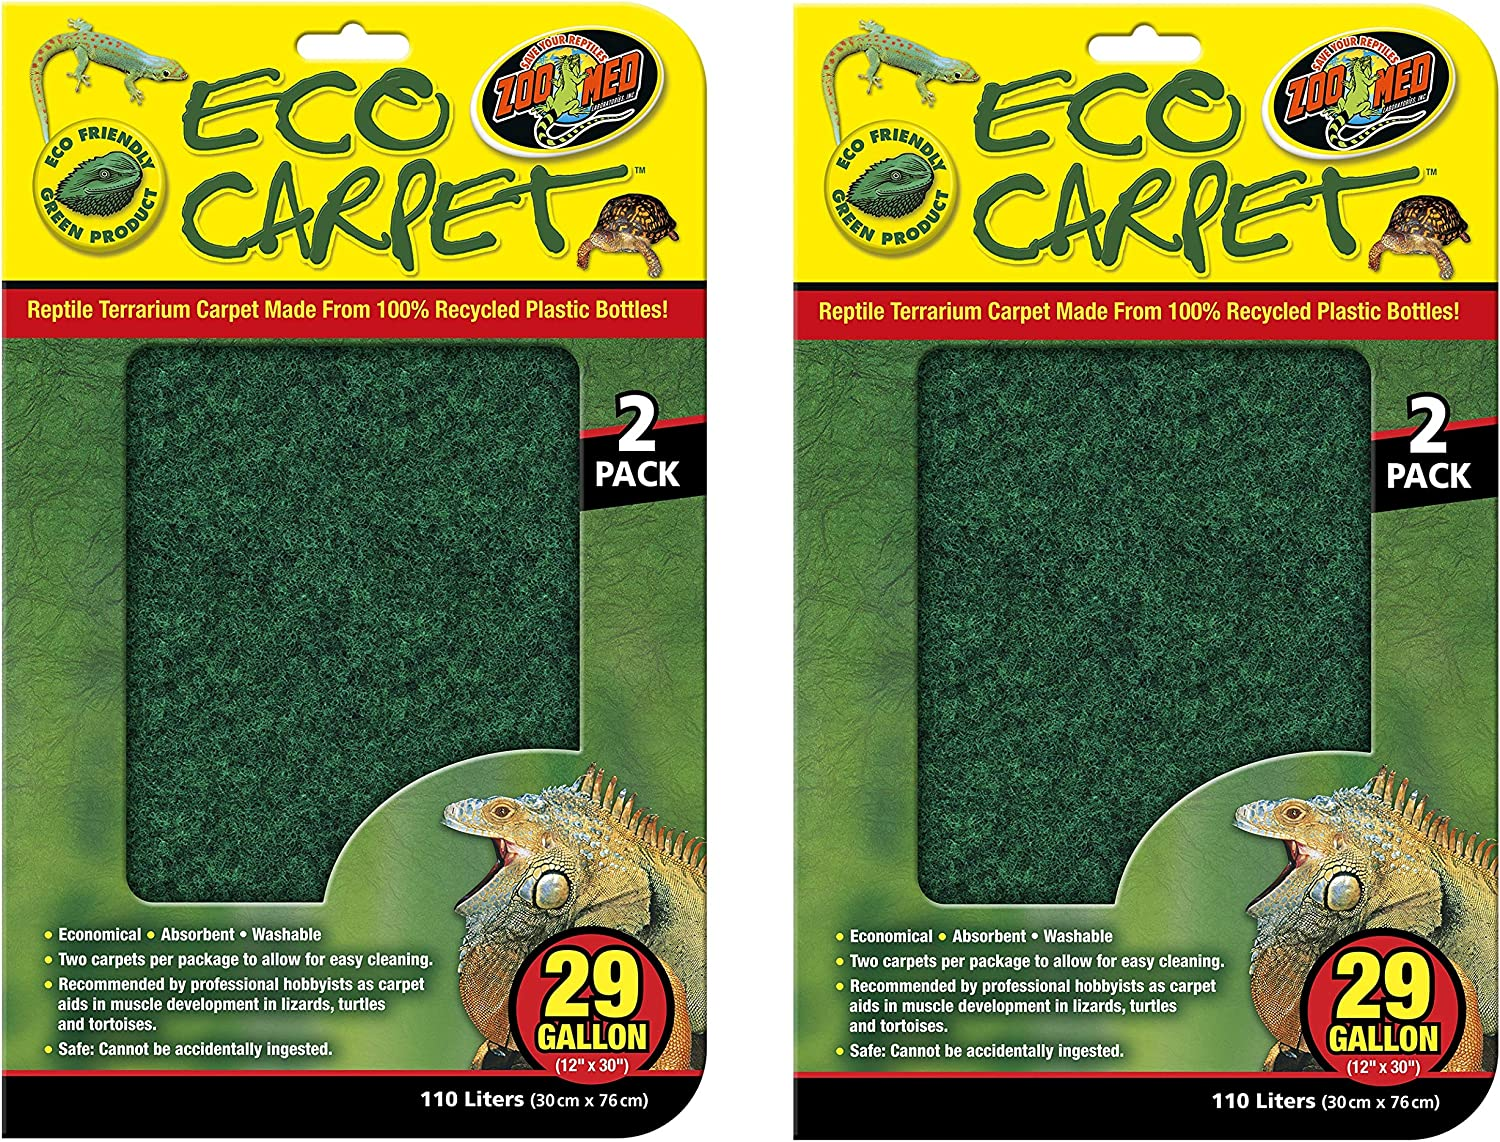 """(4 Pack) Zoo Med Repti Cage Carpet for 29 Gallon Tanks, 12"""" x 30"""" - 2 Packages with 2 carpets each"""